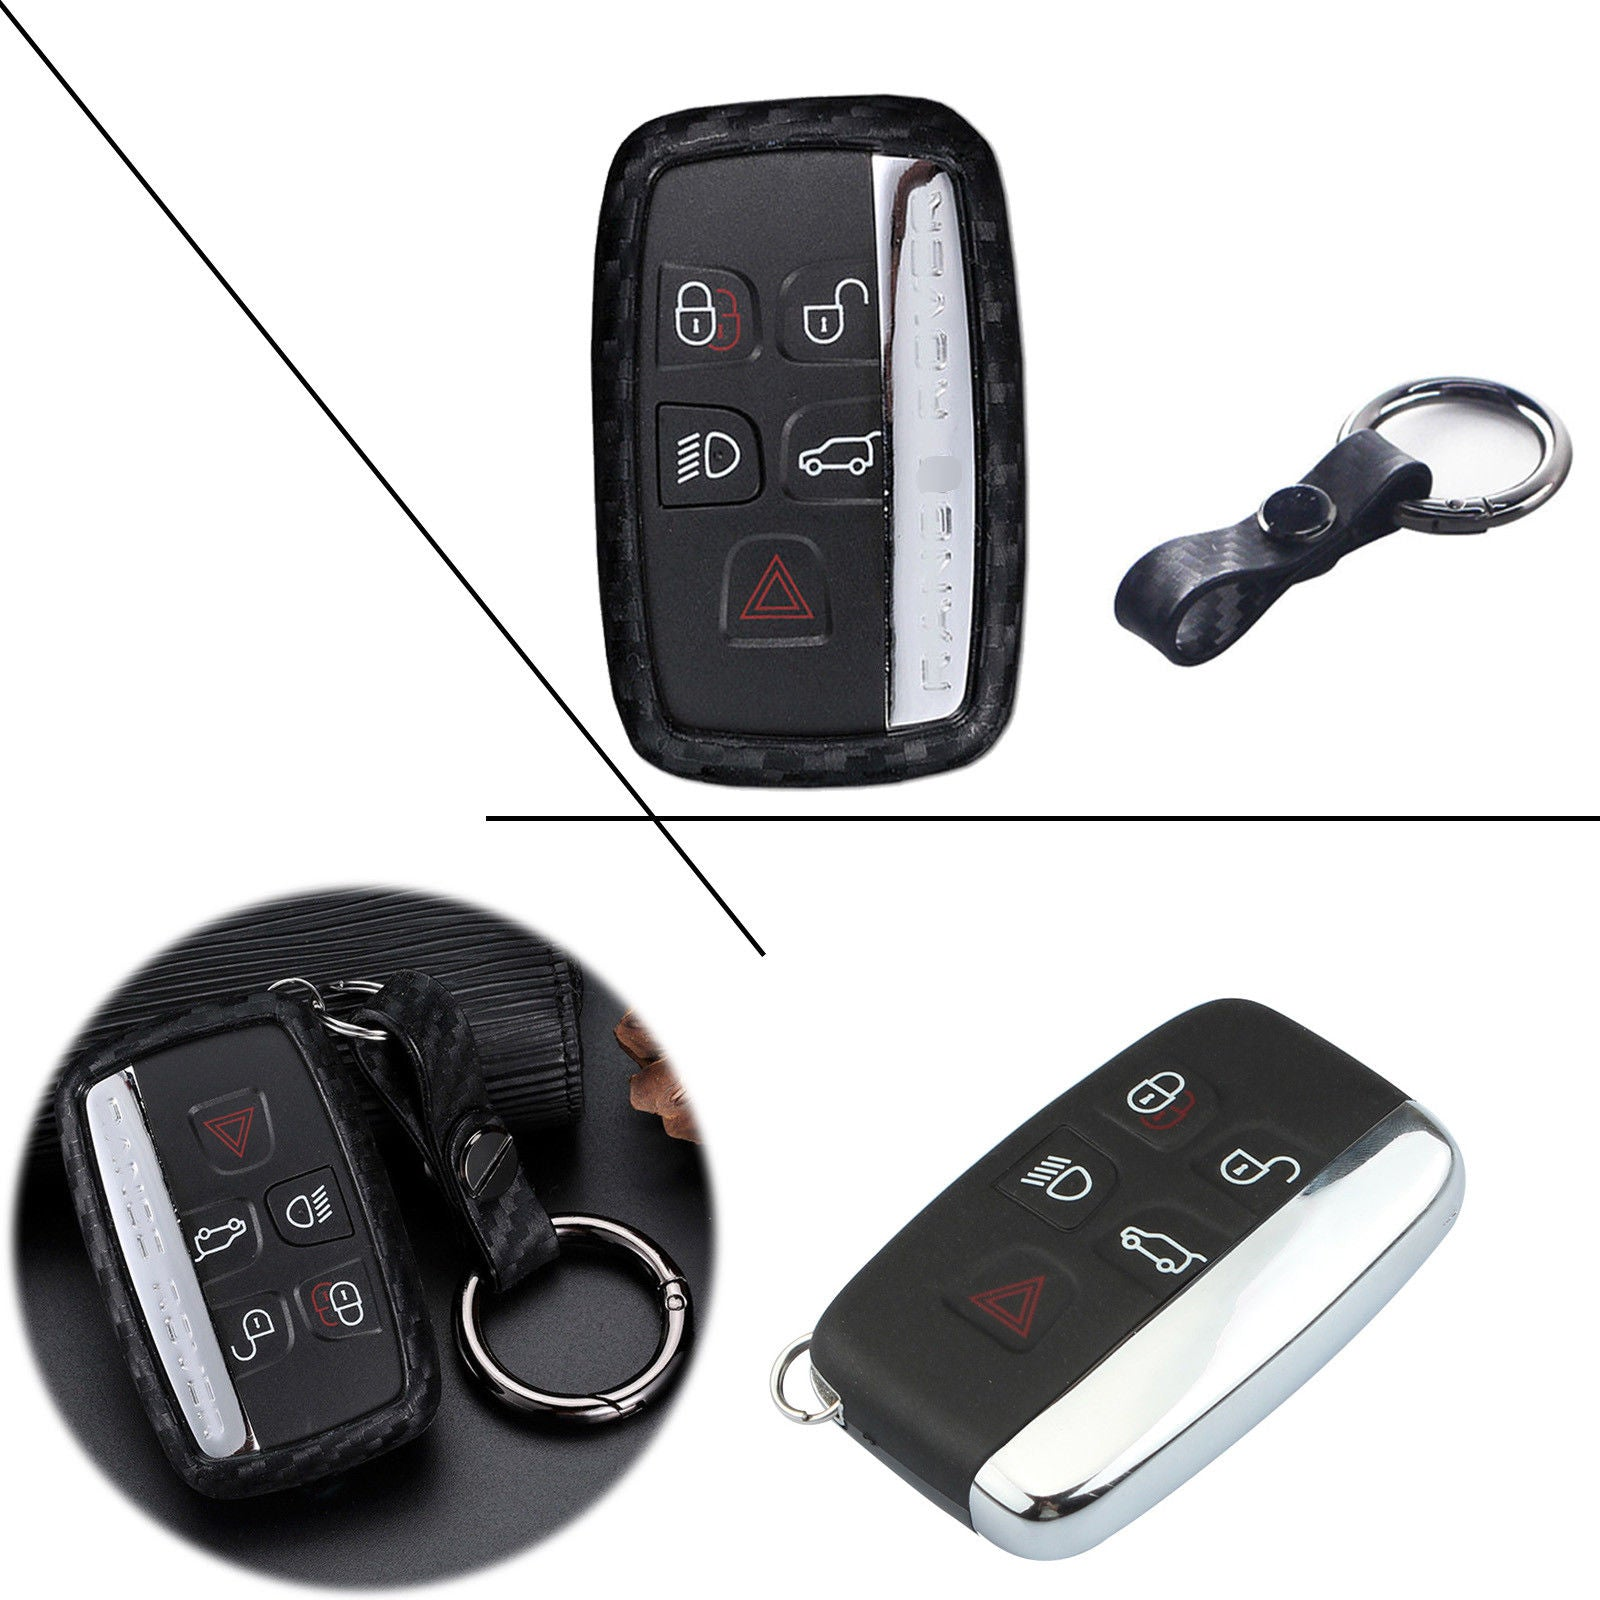 ontto Carbon Fiber Texture Key Fob Cover Case Shell Skin Holder Jacket Protector Fit for Jeep Grand Cherokee Renegade Smart Key 2 3 4 5 Button Black